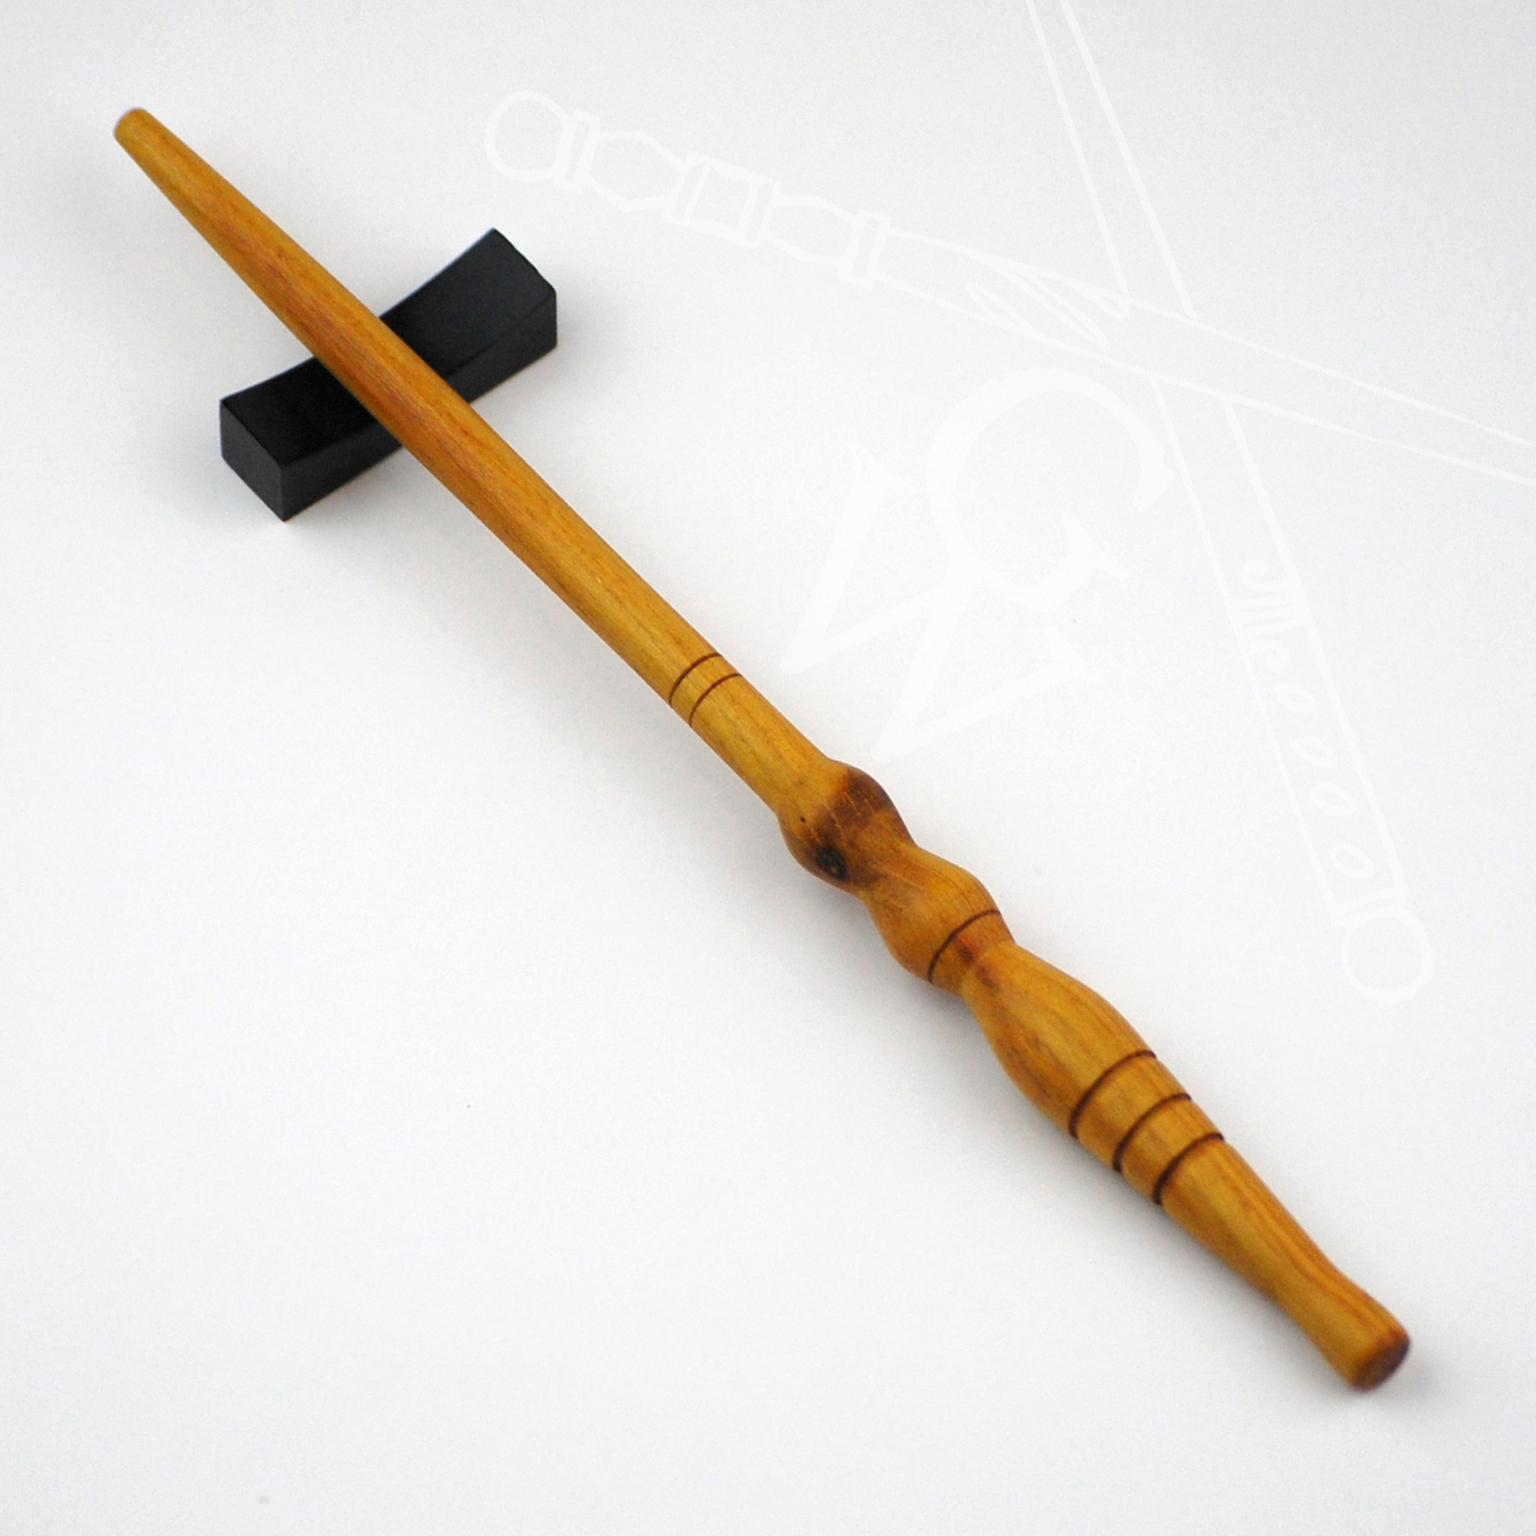 Osage Orange wand 10 1/8 inch · GipsonWands · Online Store Powered by Storenvy